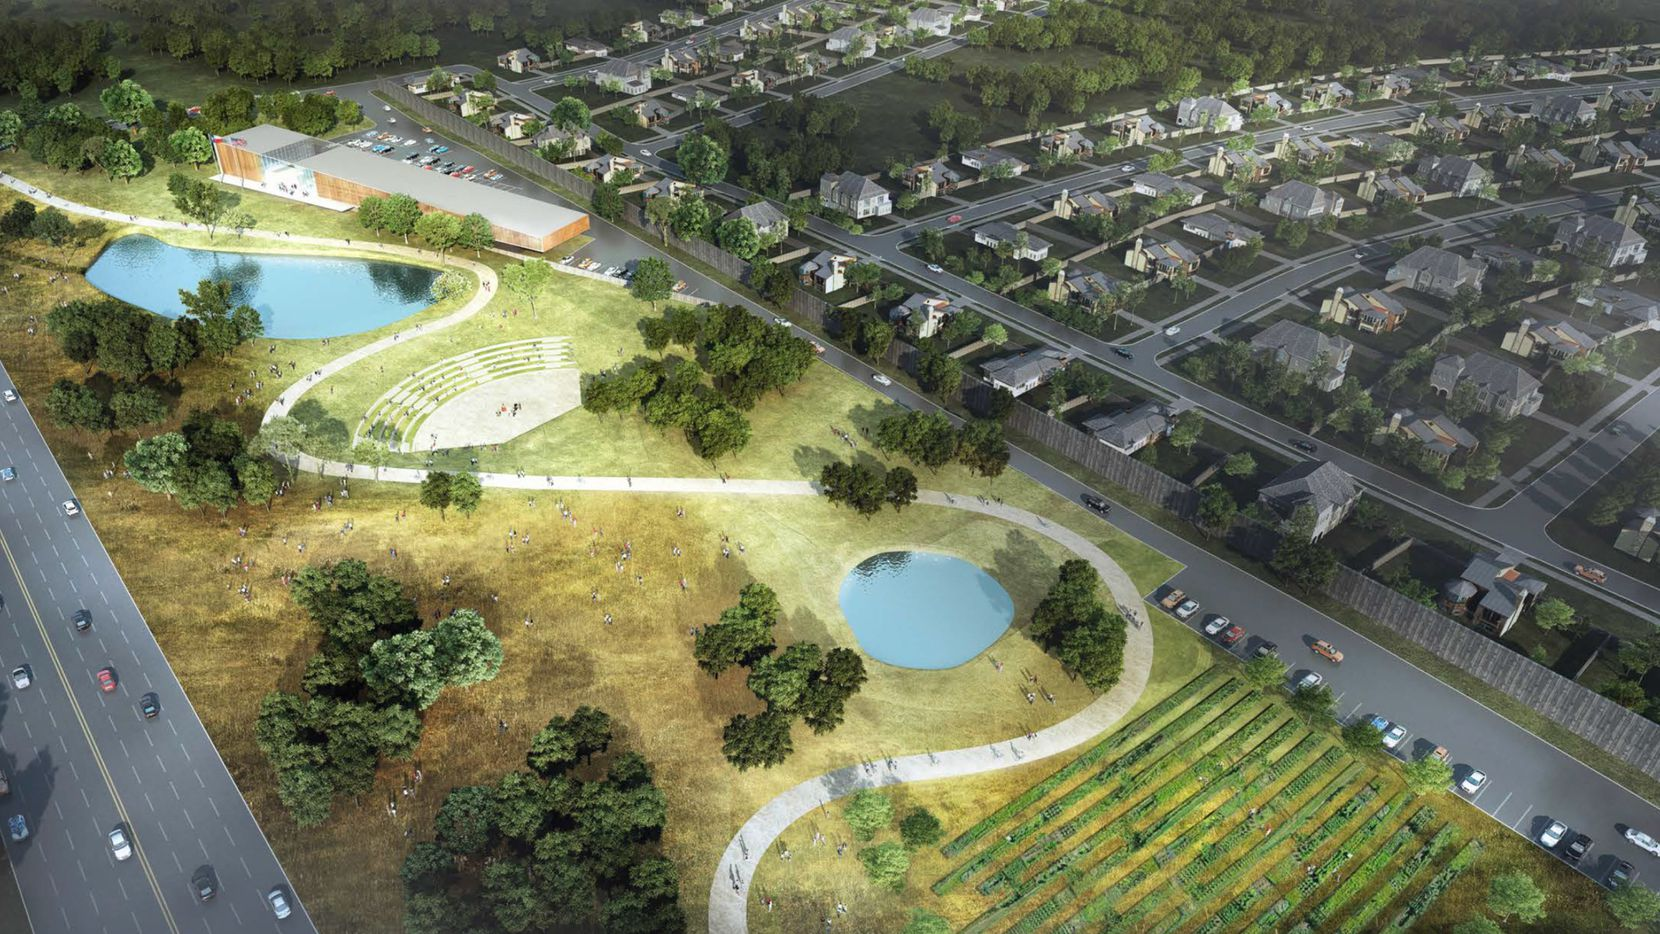 The Princeton Crossroads project will include housing, retail and open space.